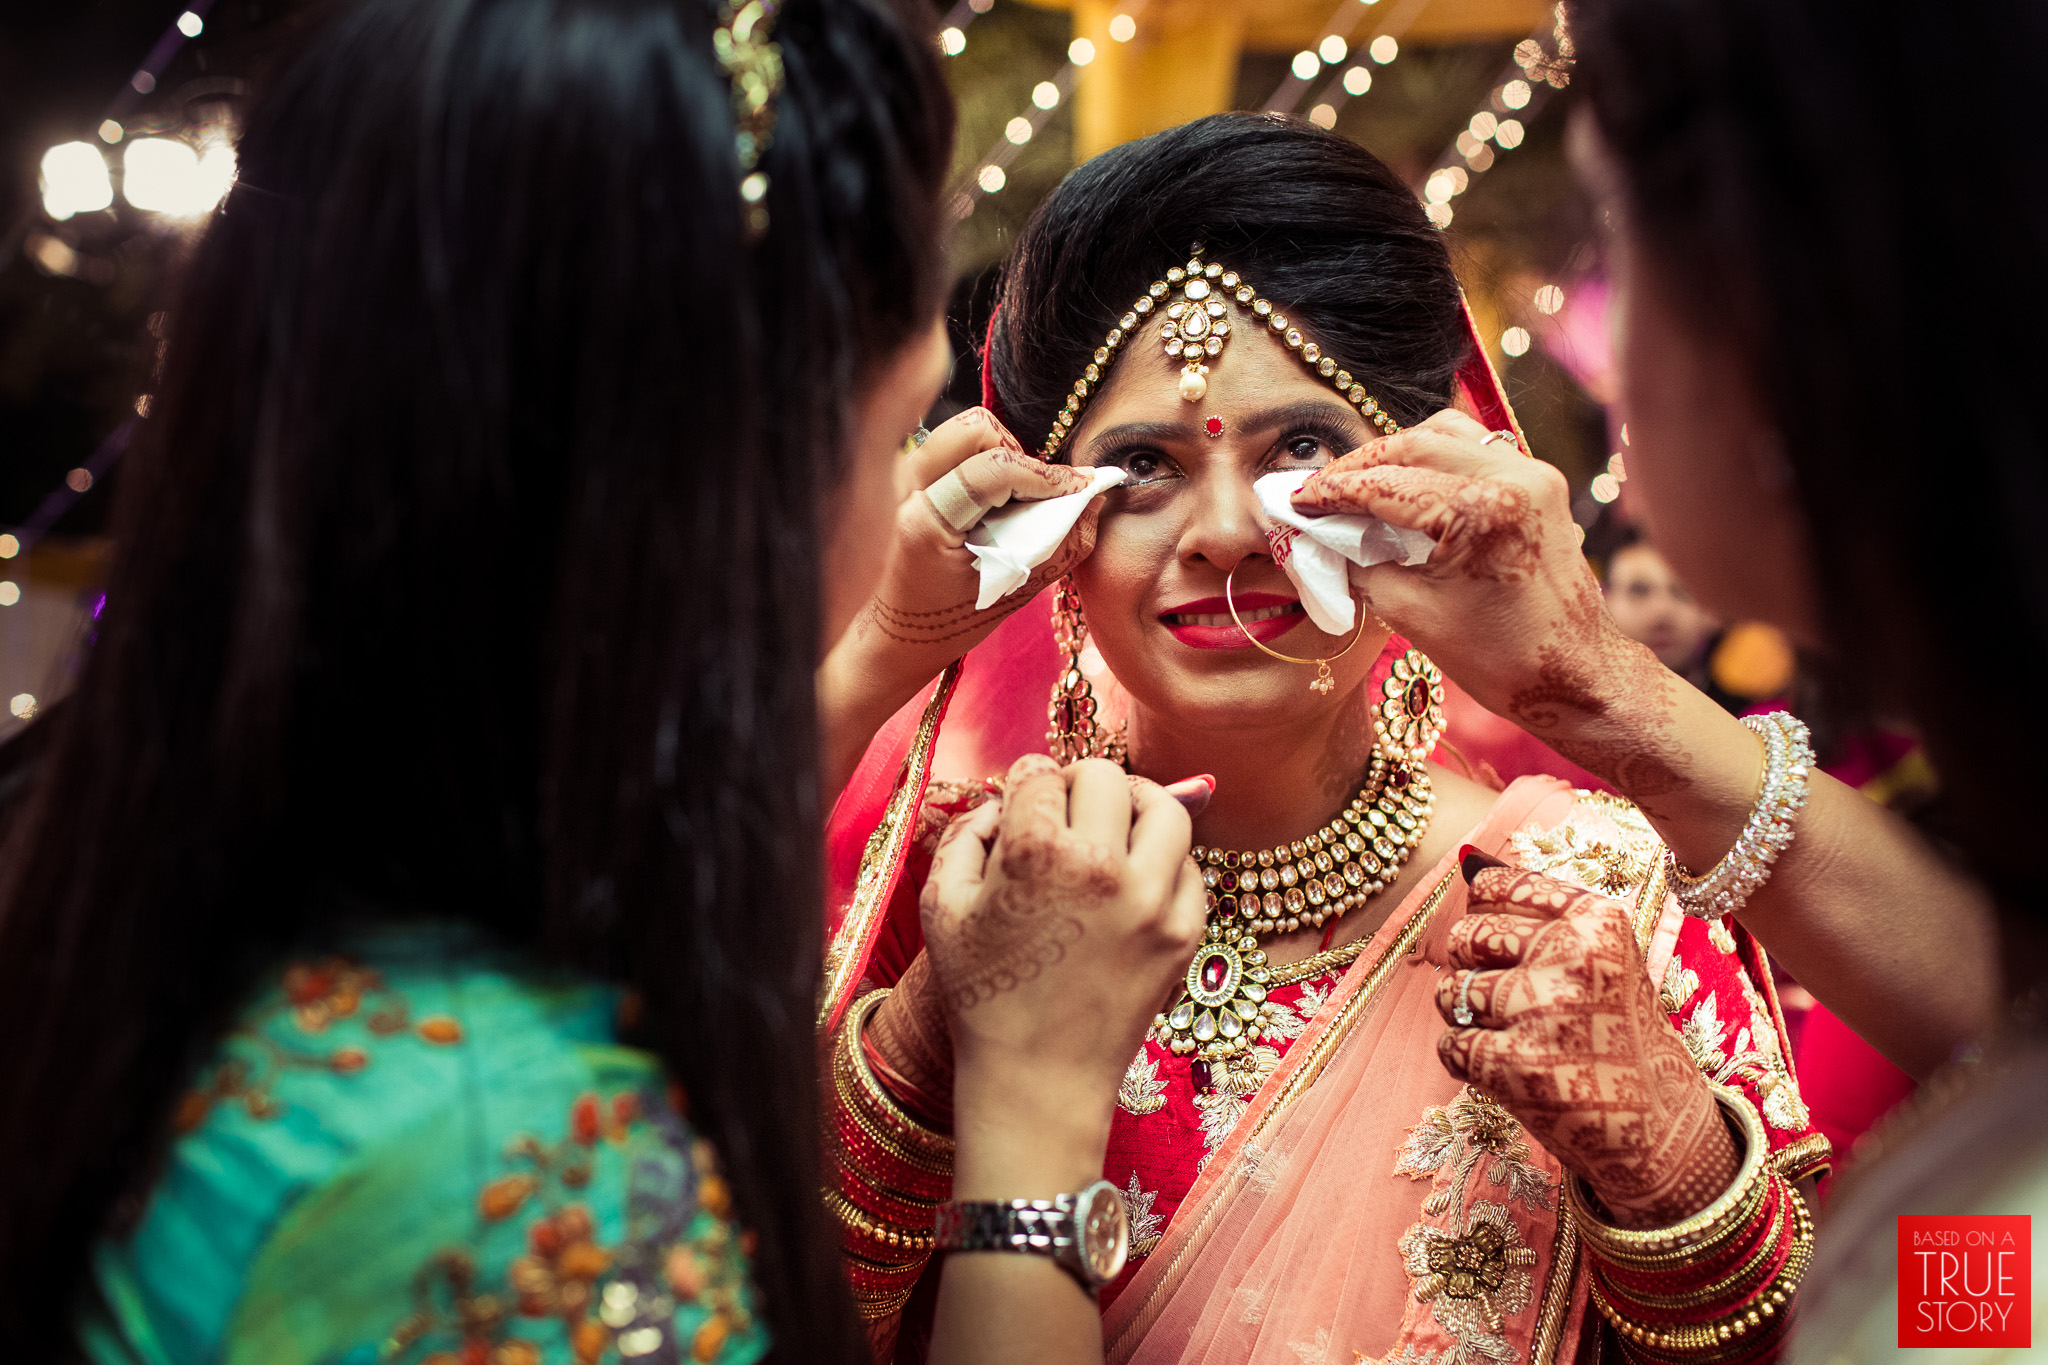 candid+wedding+photographer+lucknow-0001.jpg